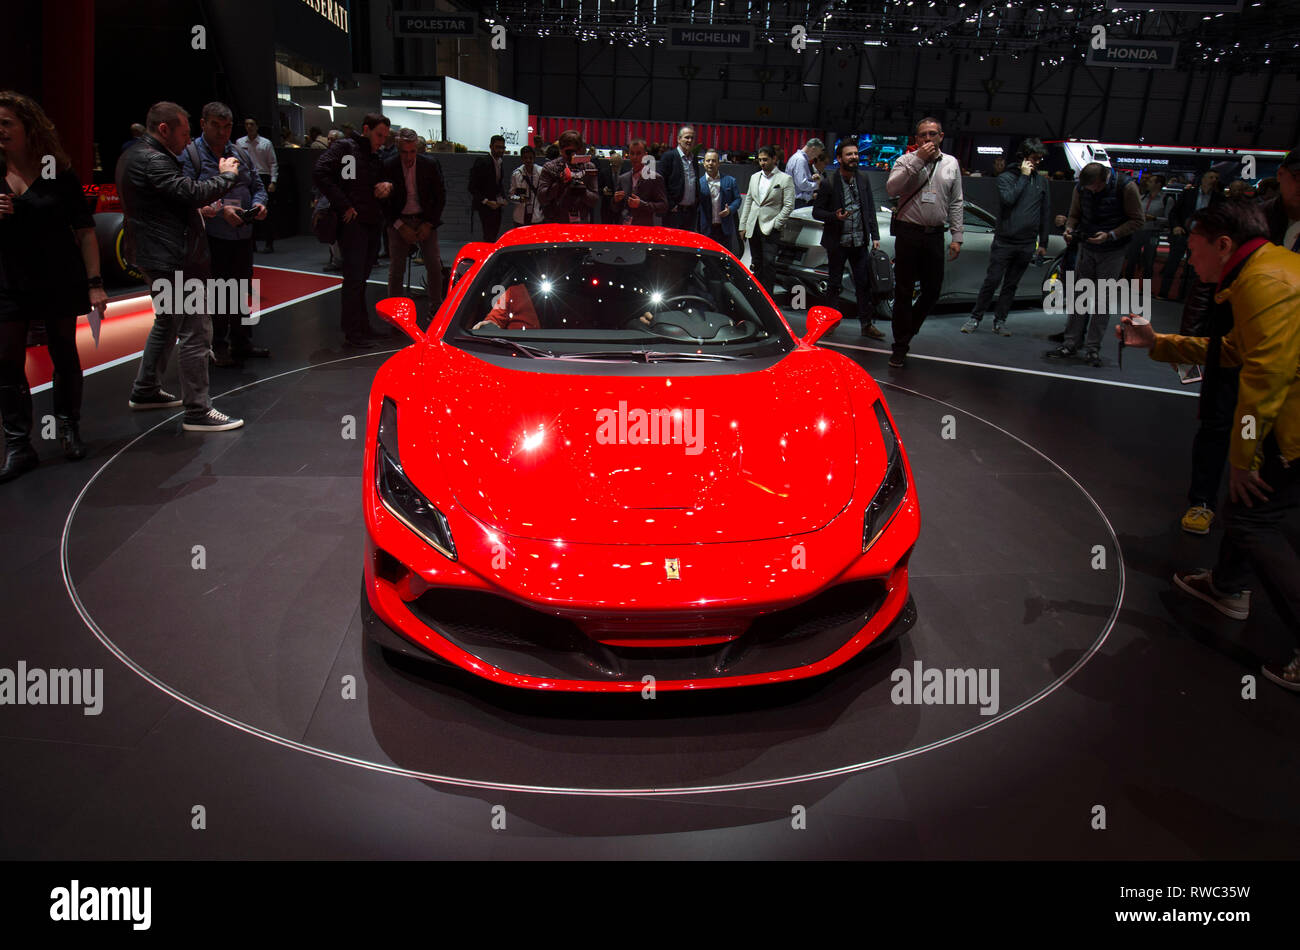 Geneva. 5th Mar, 2019. Photo taken on March 5, 2019 shows the new Ferrari F8 Tributo at the 89th Geneva International Motor Show in Geneva, Switzerland. The Motor Show will open to the public from March 7 to March 17. Credit: Xu Jinquan/Xinhua/Alamy Live News - Stock Image